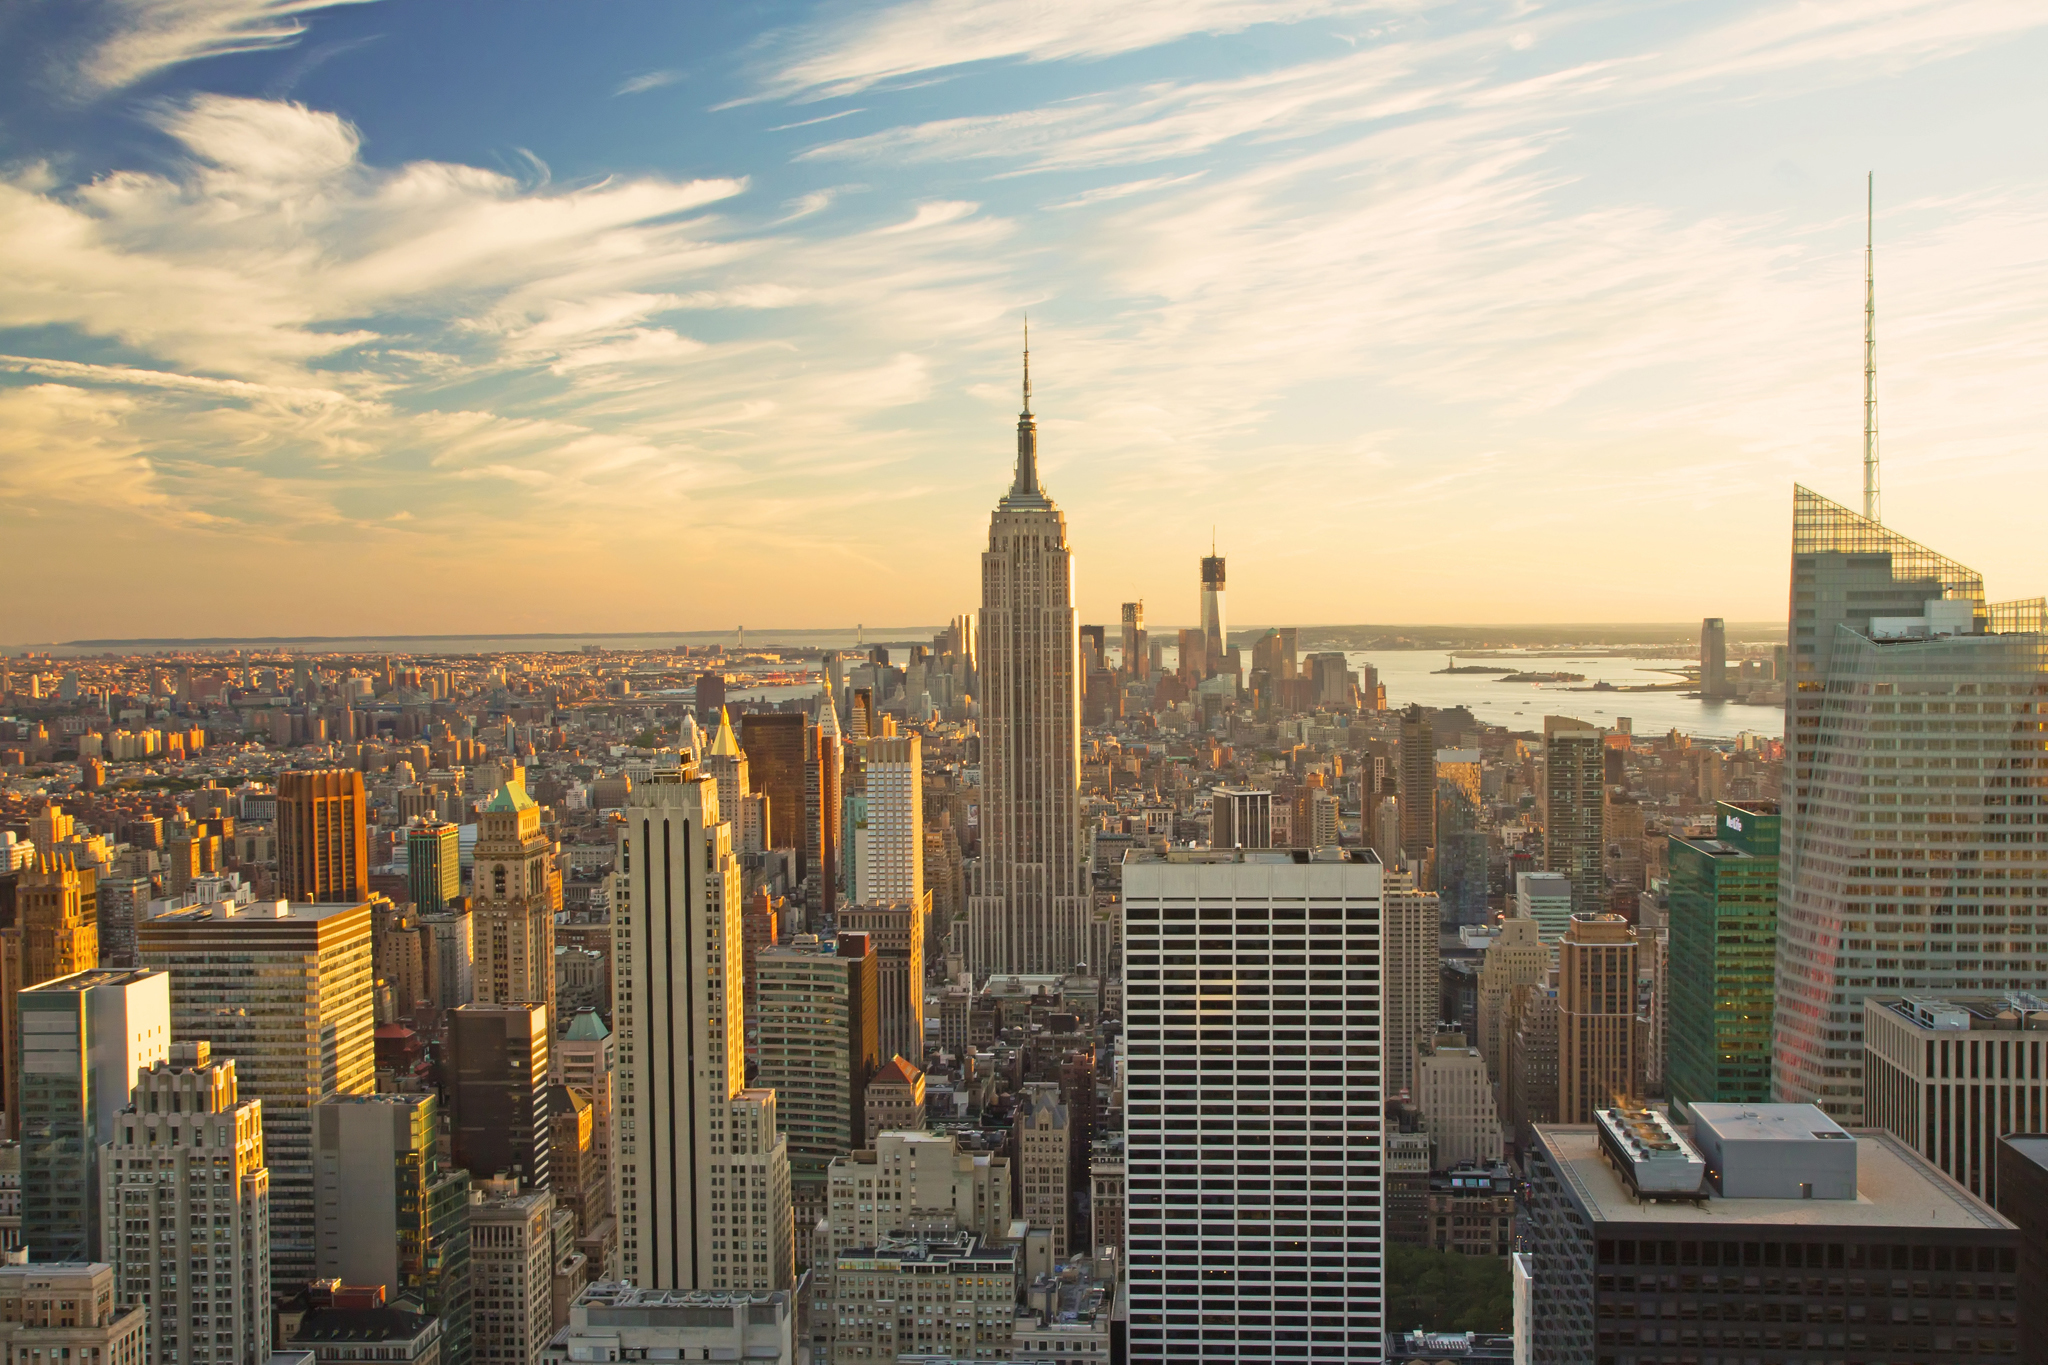 31 signs that New York City likes you today